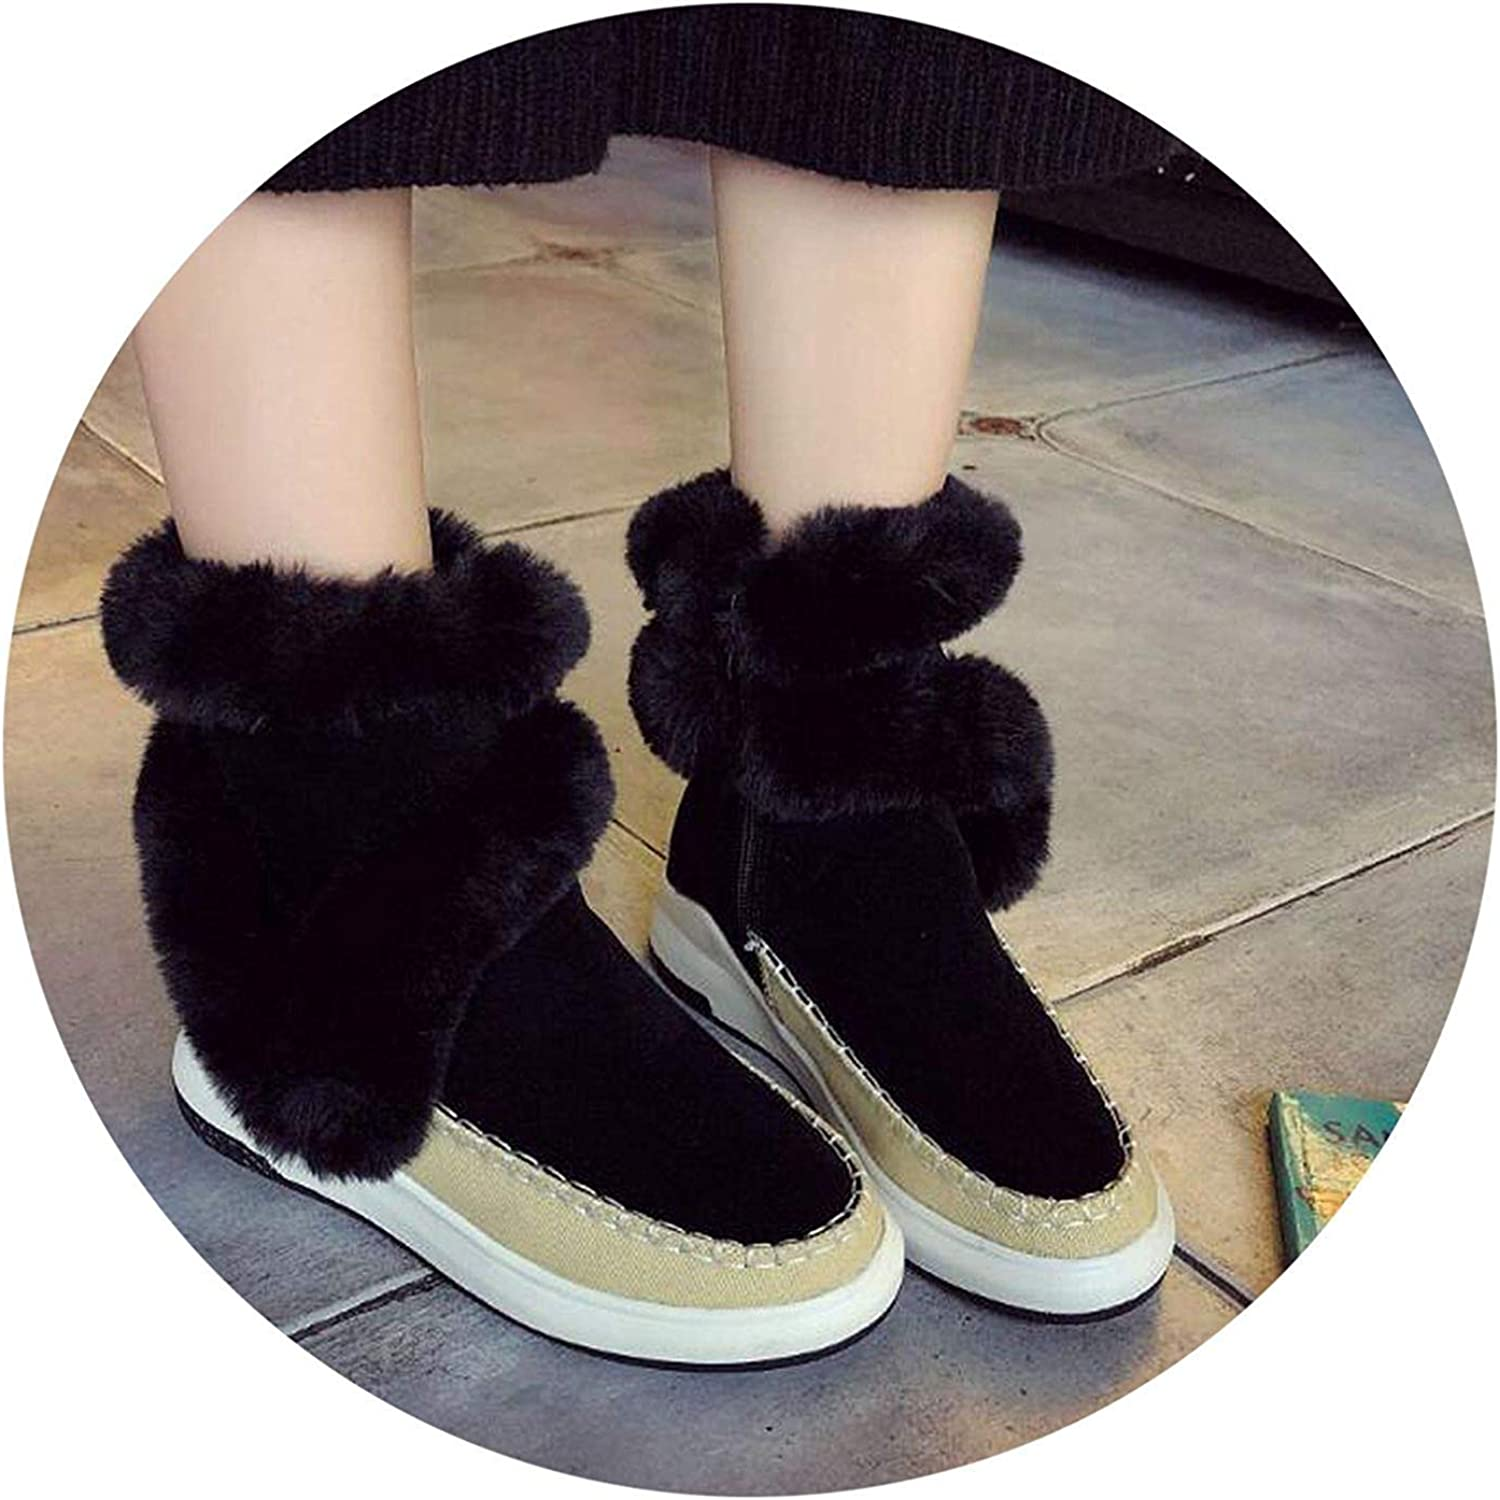 Boots Wedge Platform Winter Warm Snow Boots Plush Boots for on Fe Shoes F860,8MUS,Gray